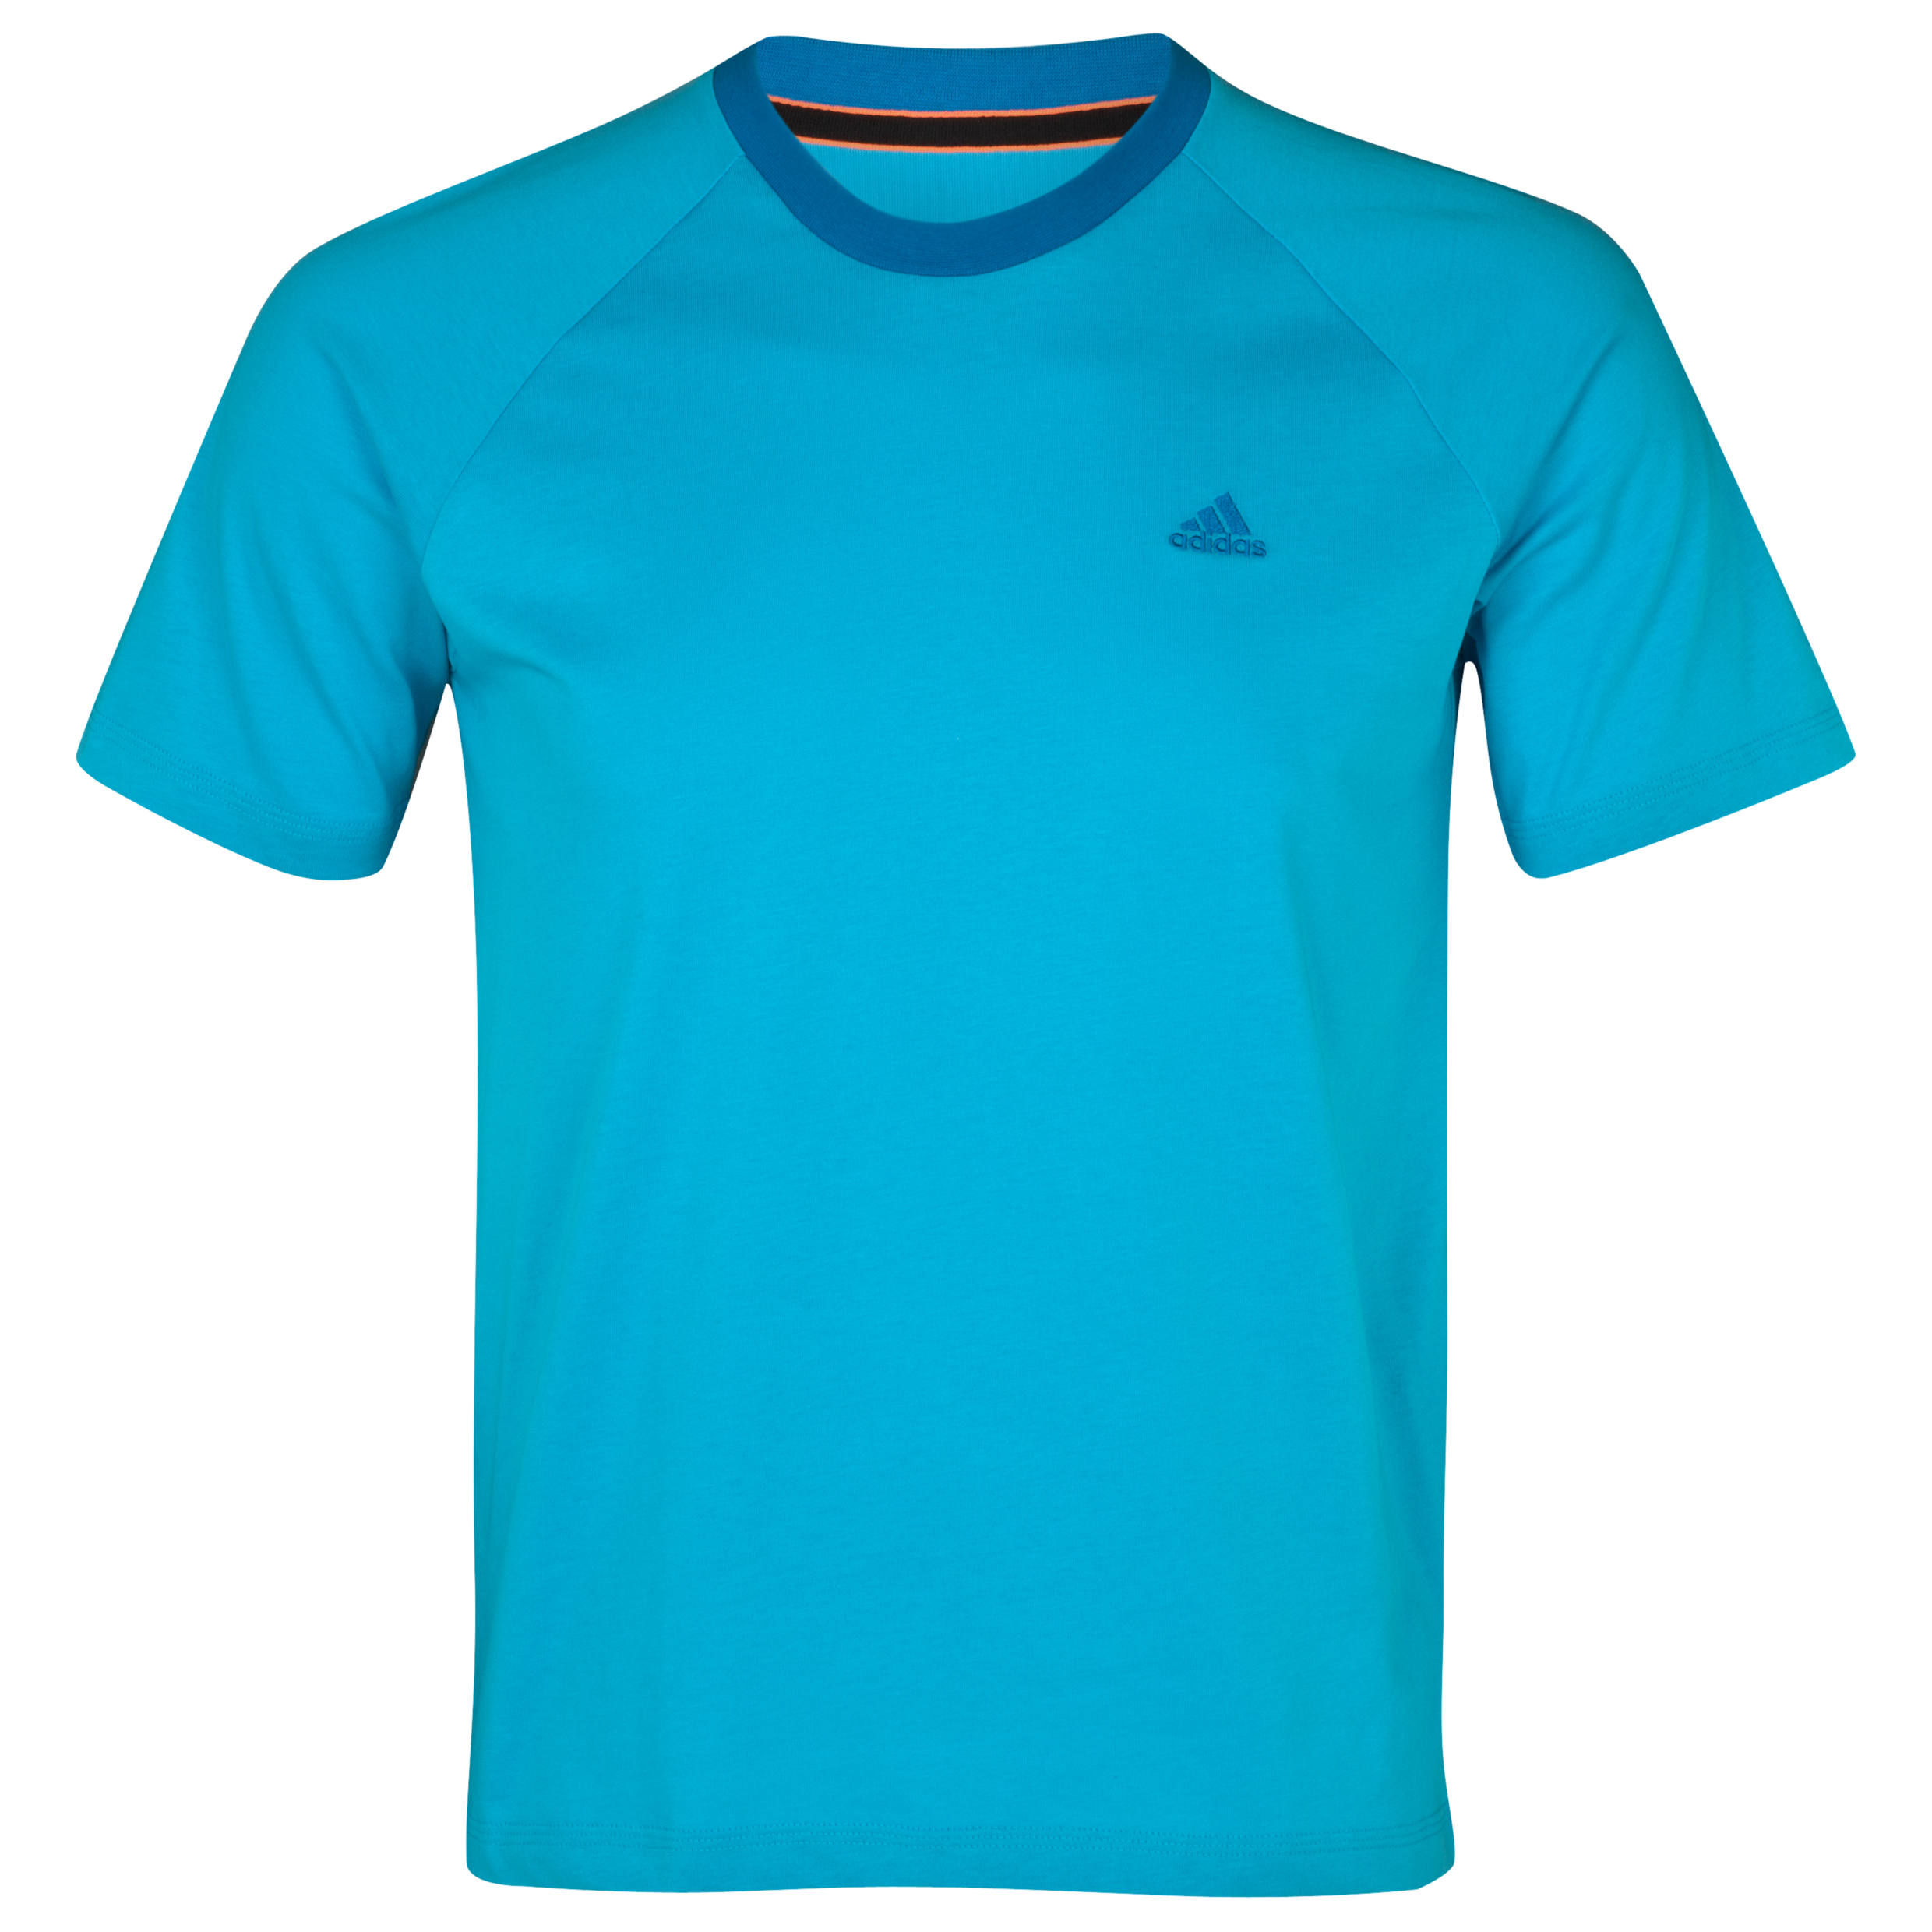 Adidas Essentials Crew T-Shirt - Super Cyan S12